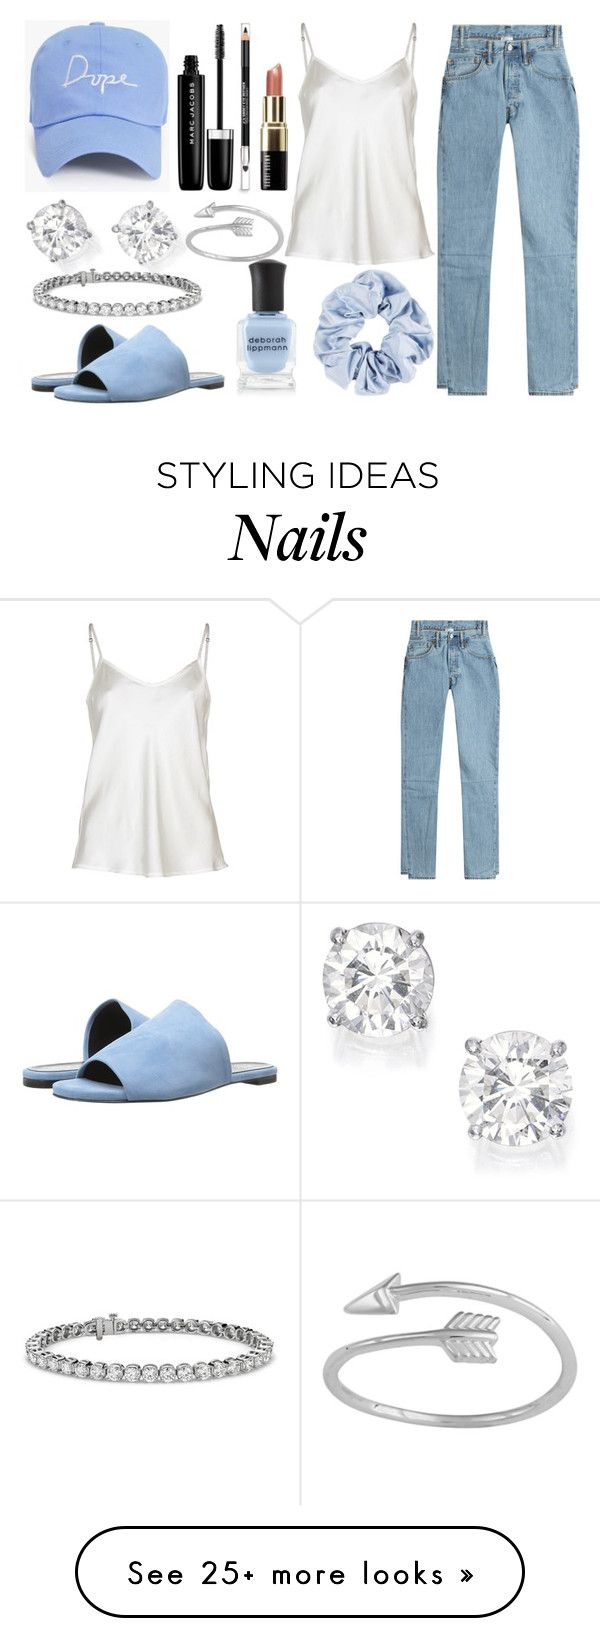 """ME"" by ellelovesfashion07 on Polyvore featuring Boohoo, Bobbi Brown Cosmetics, The Body Shop, Vetements, Robert Clergerie, Marc Jacobs, Deborah Lippmann, Blue Nile and Midsummer Star"